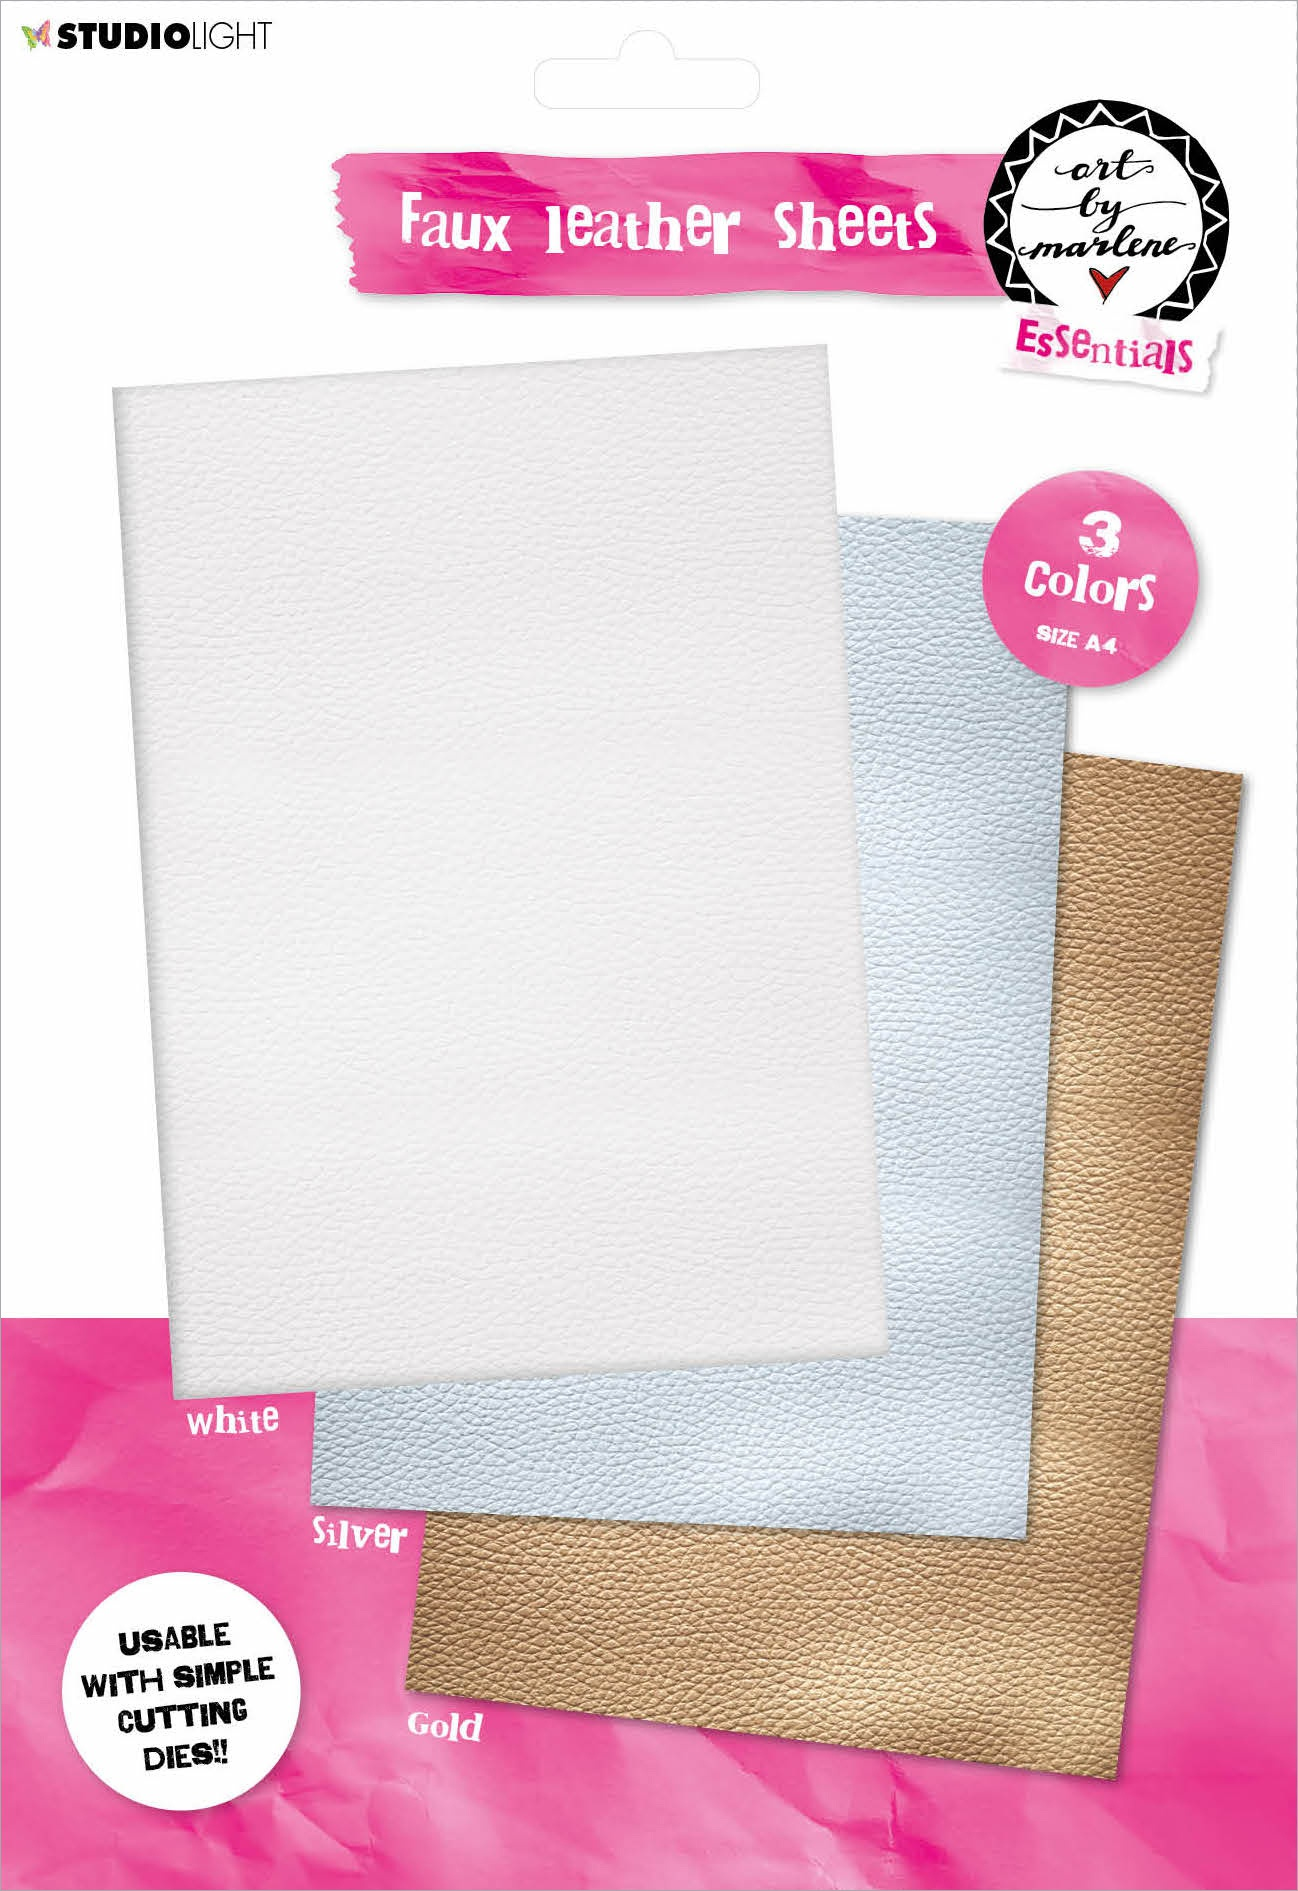 Studio Light Art By Marlene Faux Leather Sheets A4 3/Pkg-White Gold & Silver